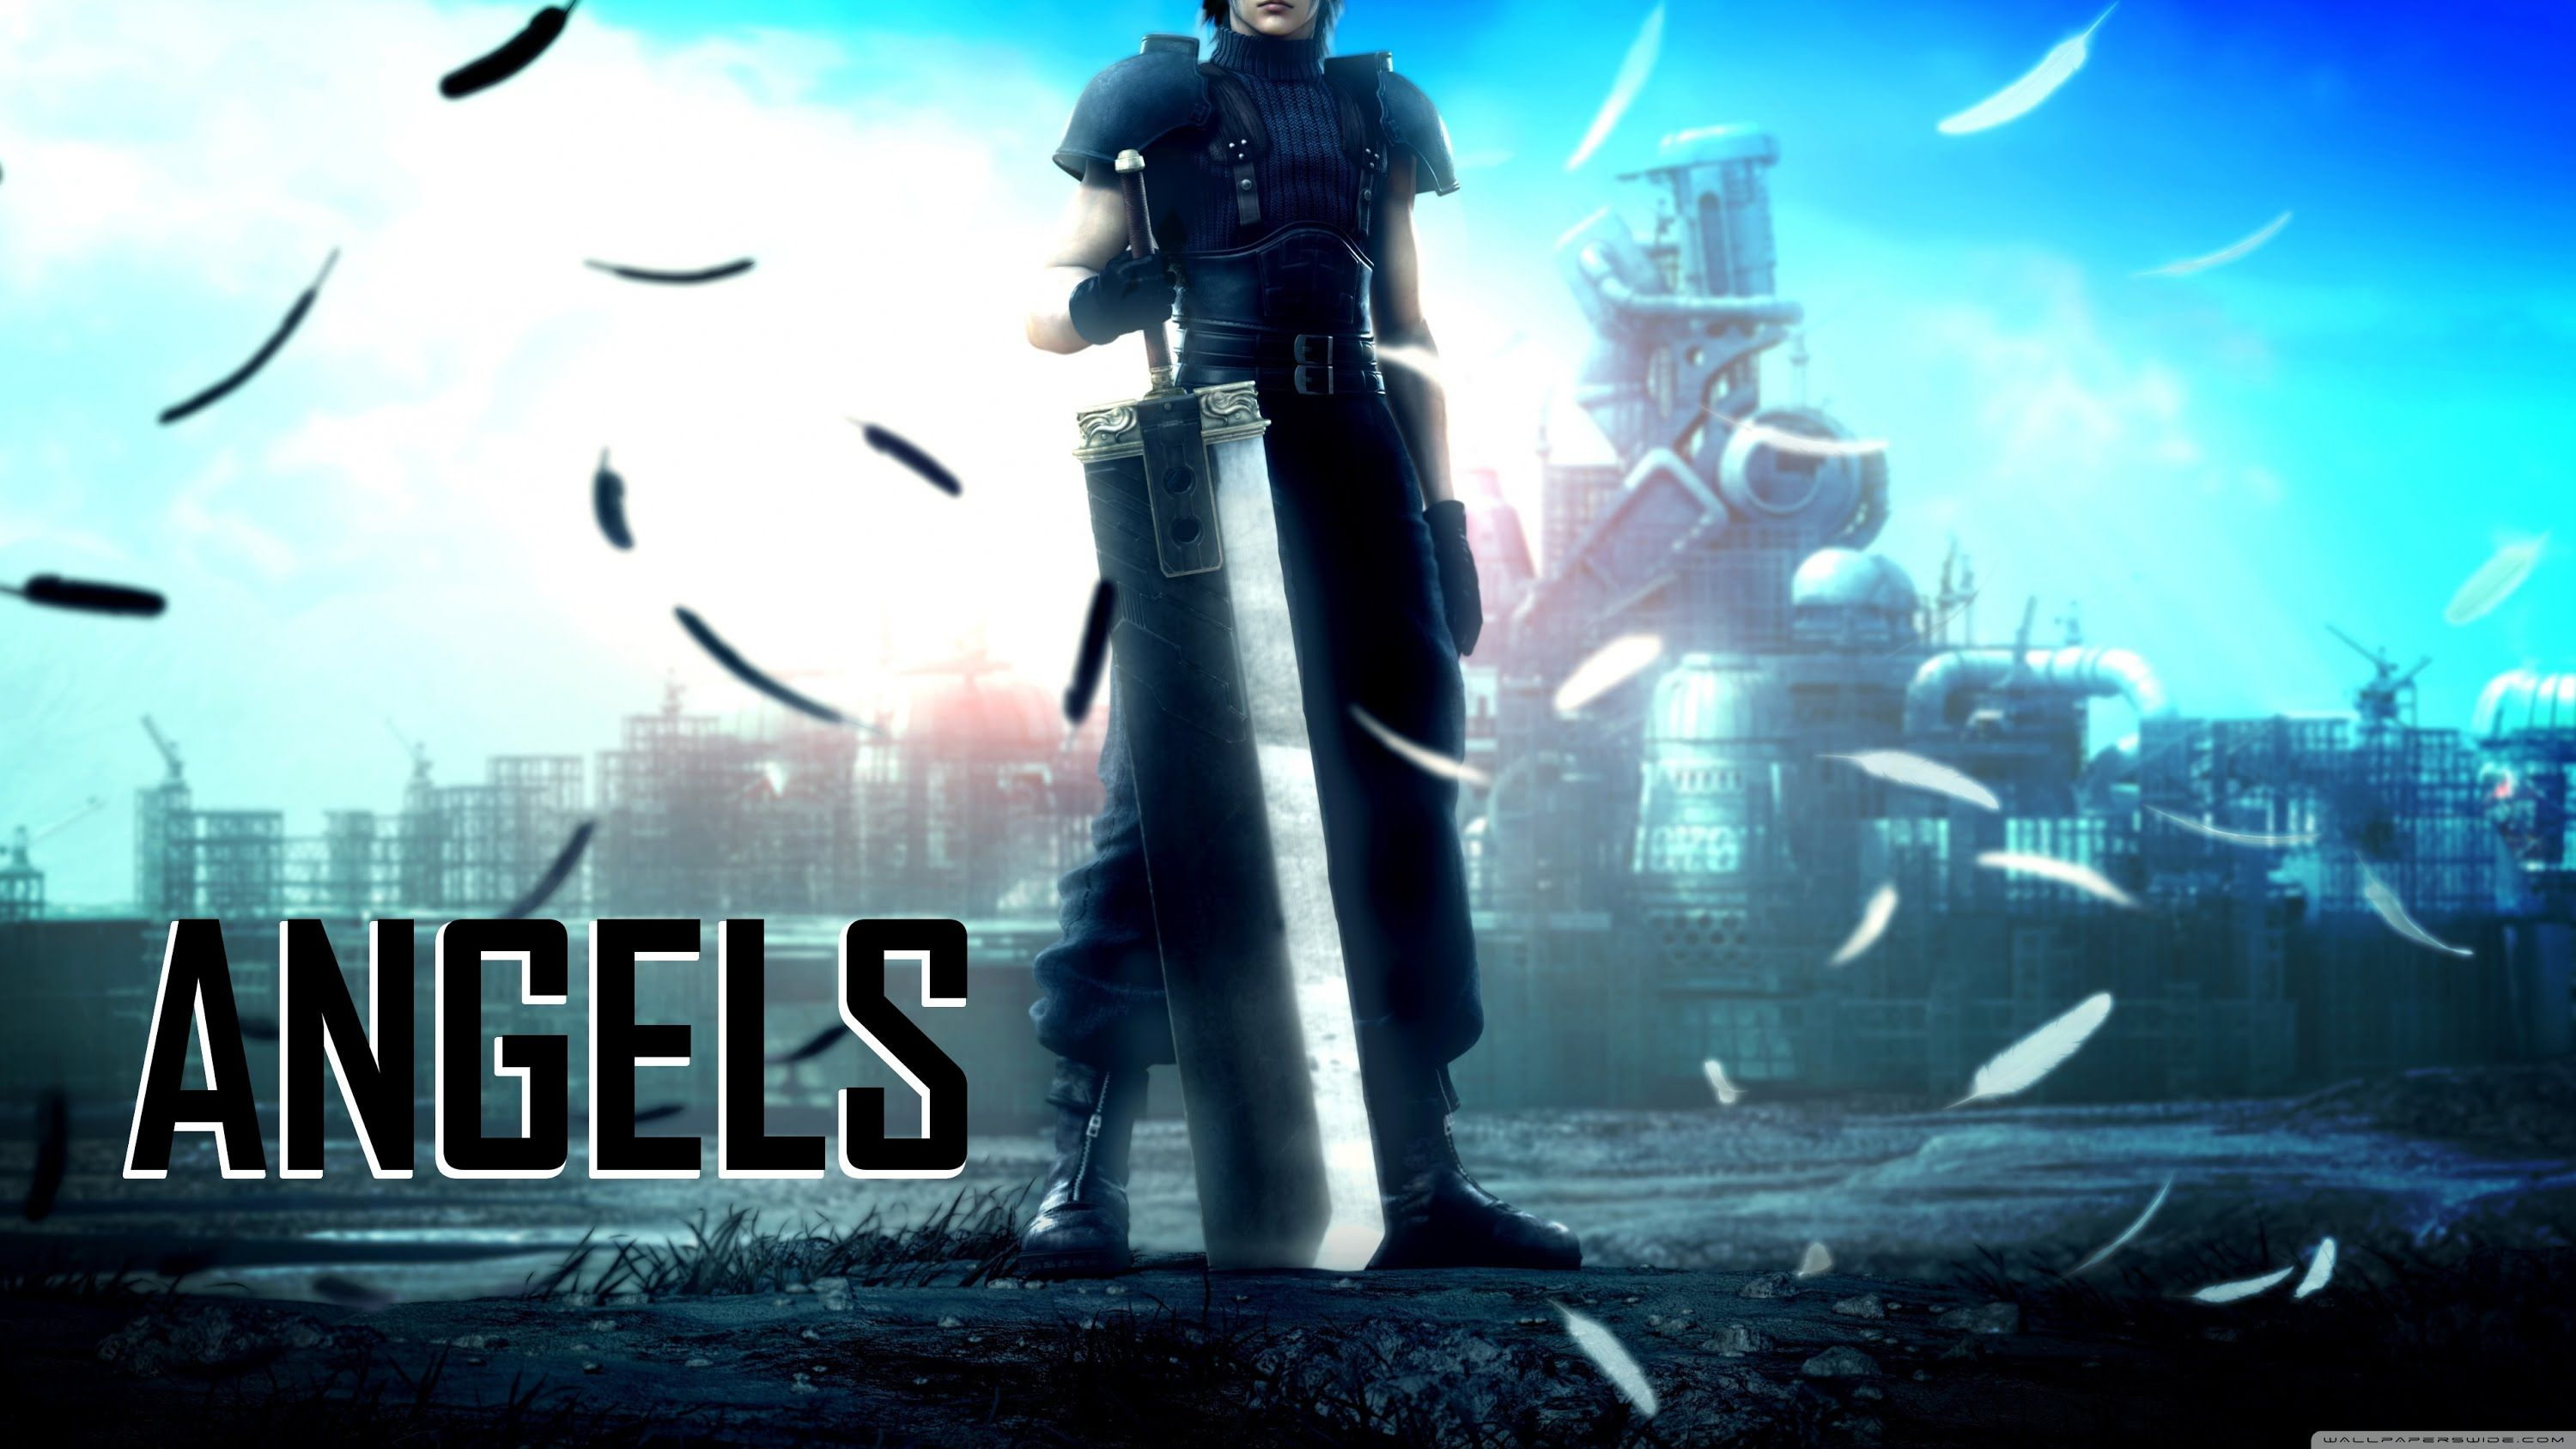 Final Fantasy 7 Angels AMV ( Anime Music Video ) (With